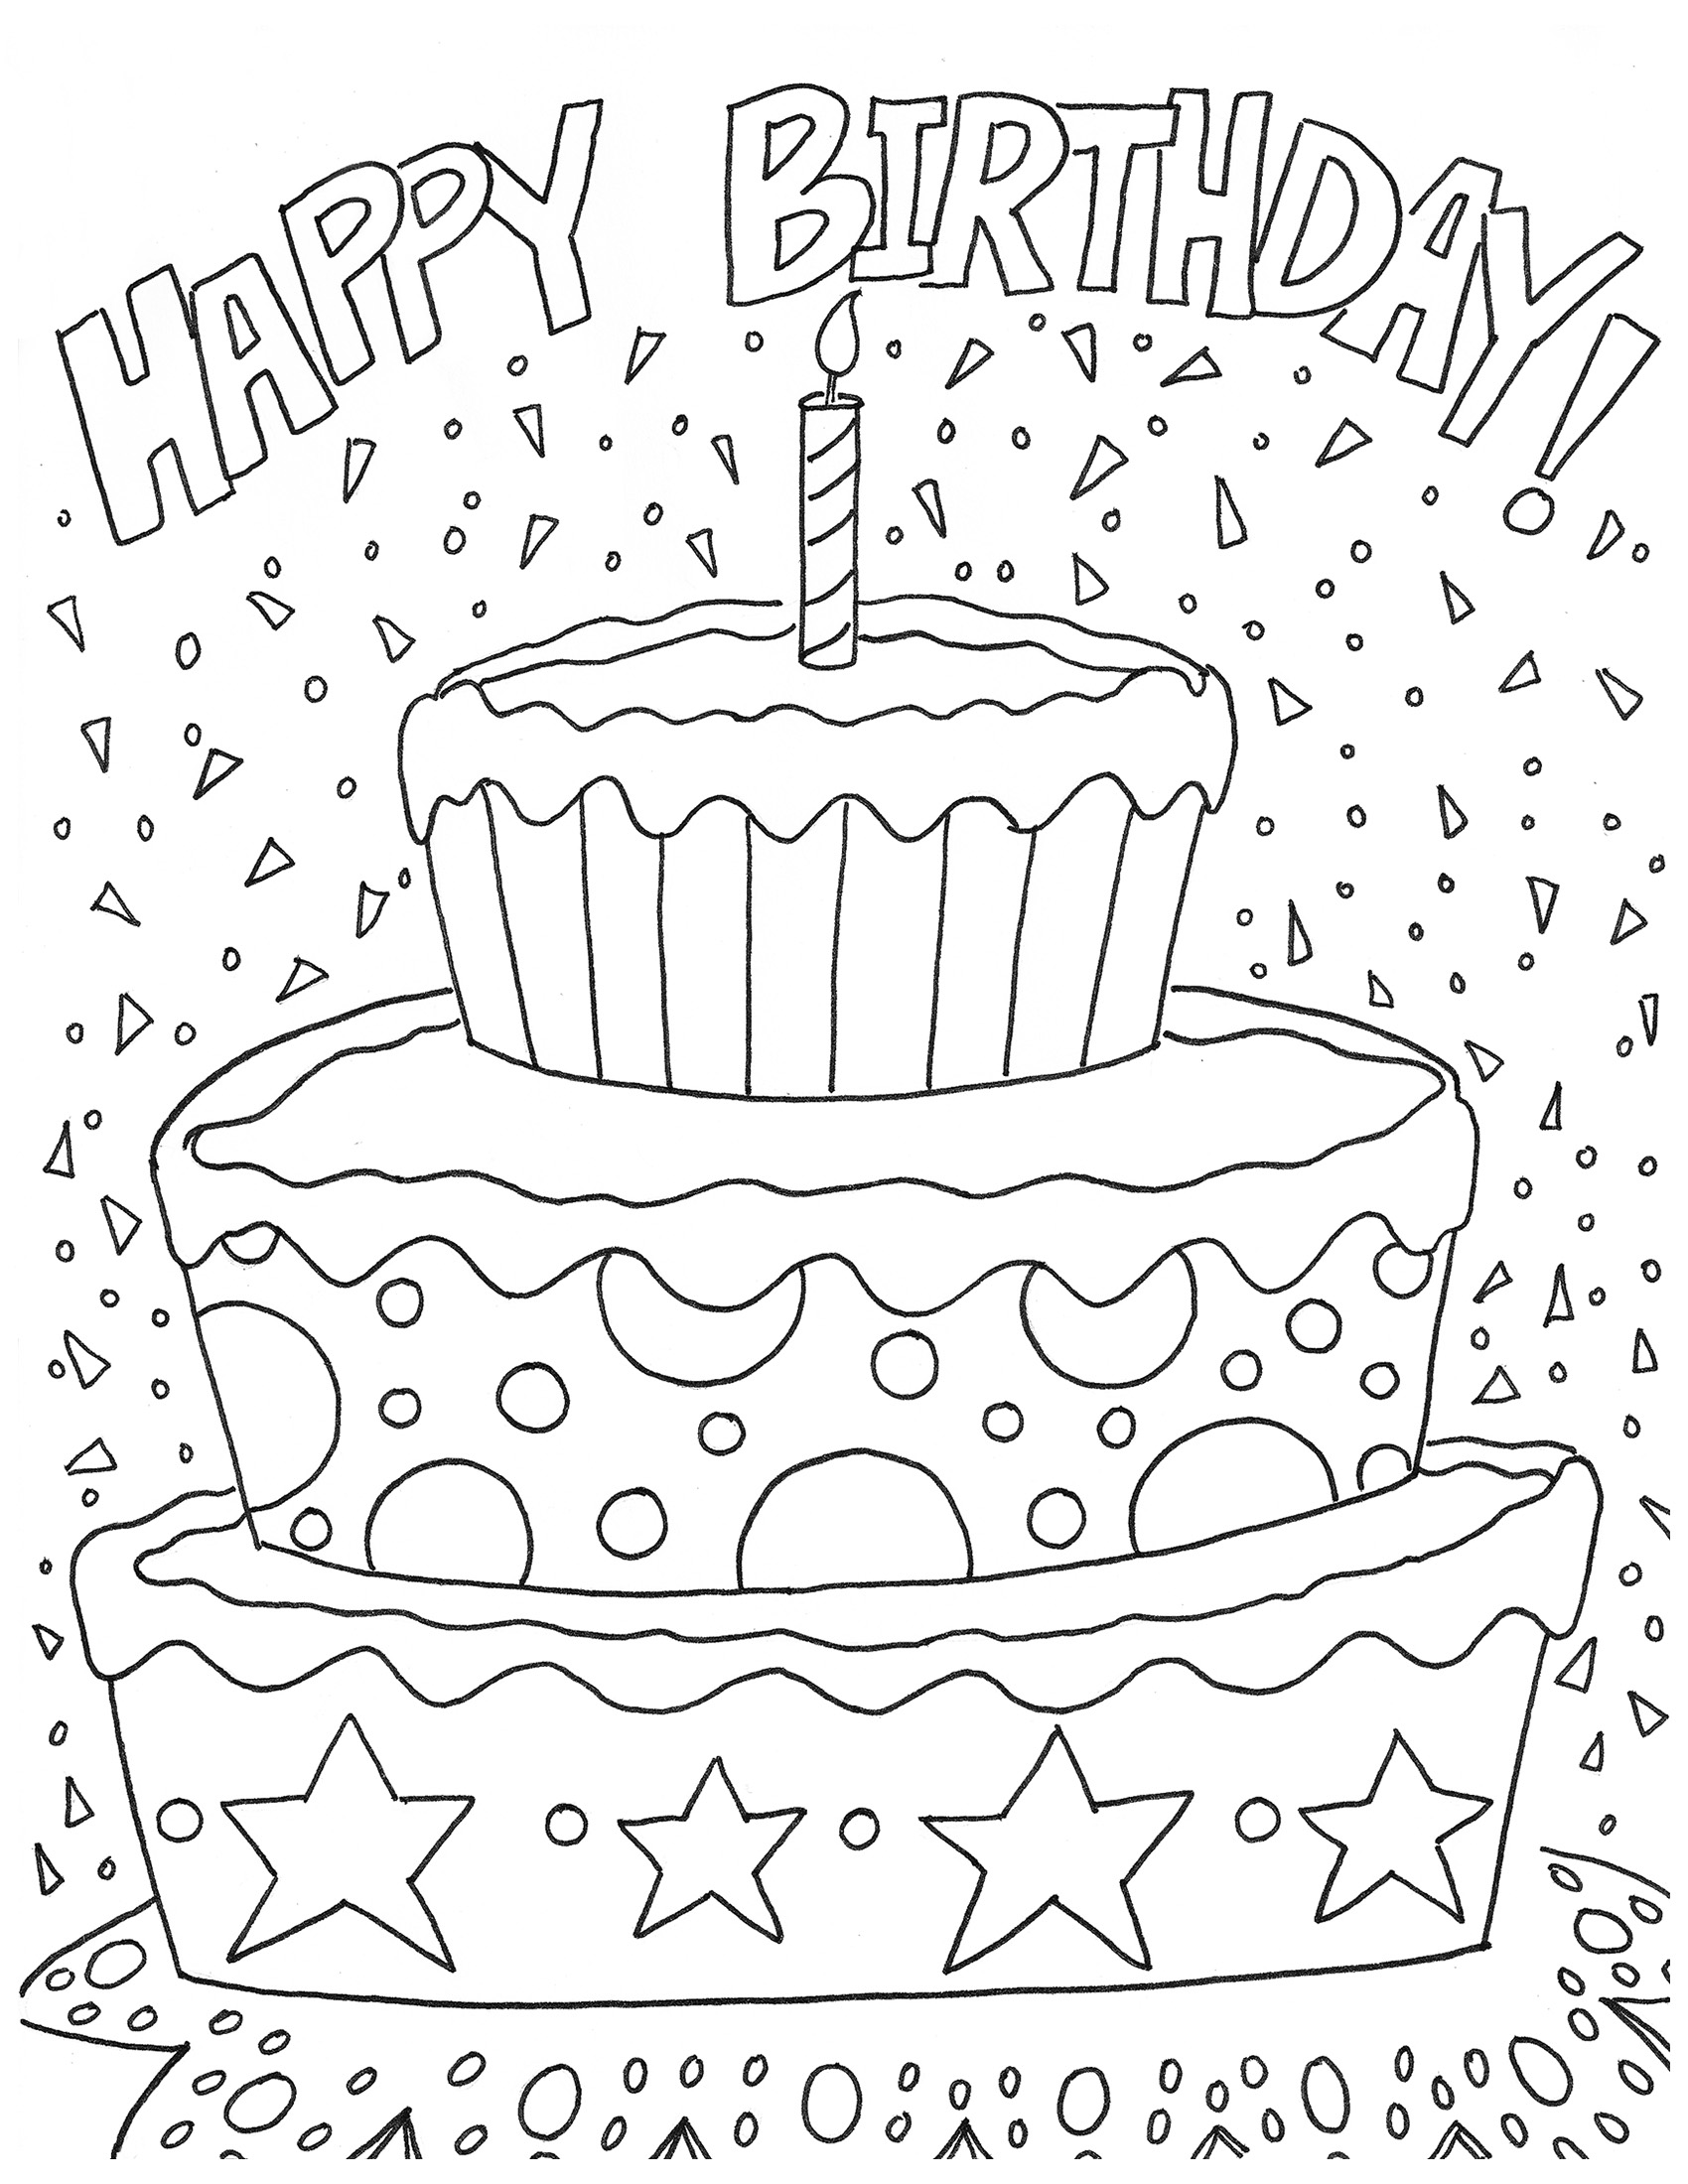 happy birthday coloring pages printable 25 free printable happy birthday coloring pages printable coloring happy pages birthday